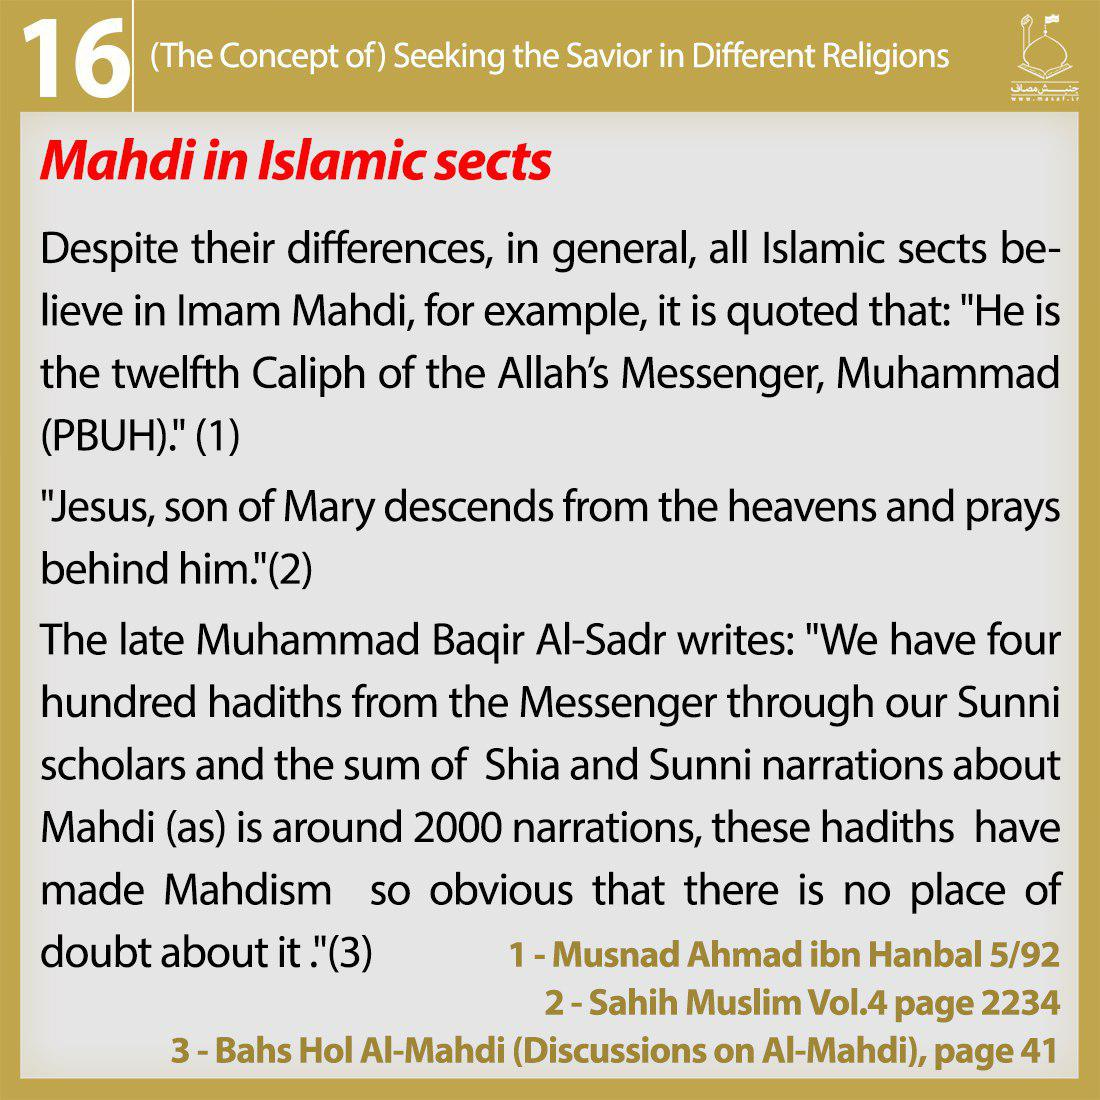 seeking the savior,the savior,islamic savior,hidden imam,12th imam,imam mahdi,12th imam prophecy,twelfth imam